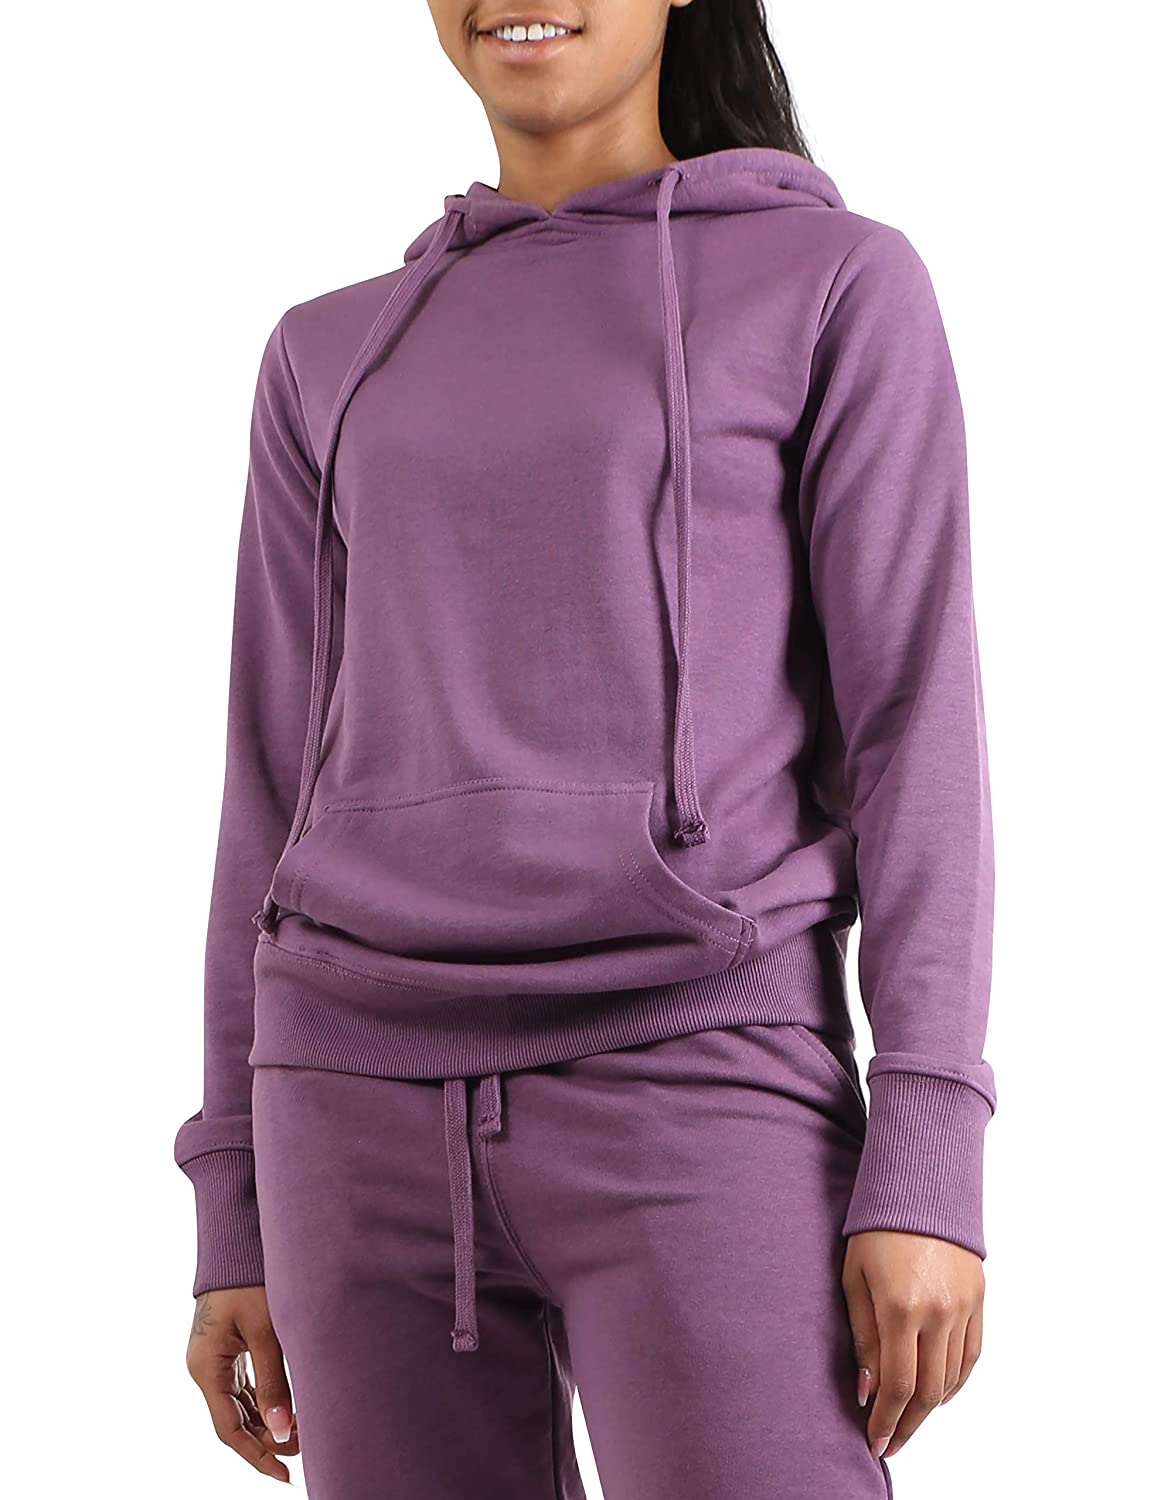 Ma Croix Womens Active Pullover Hoodie Sweatshirt Casual Workout Lounge S-2XL